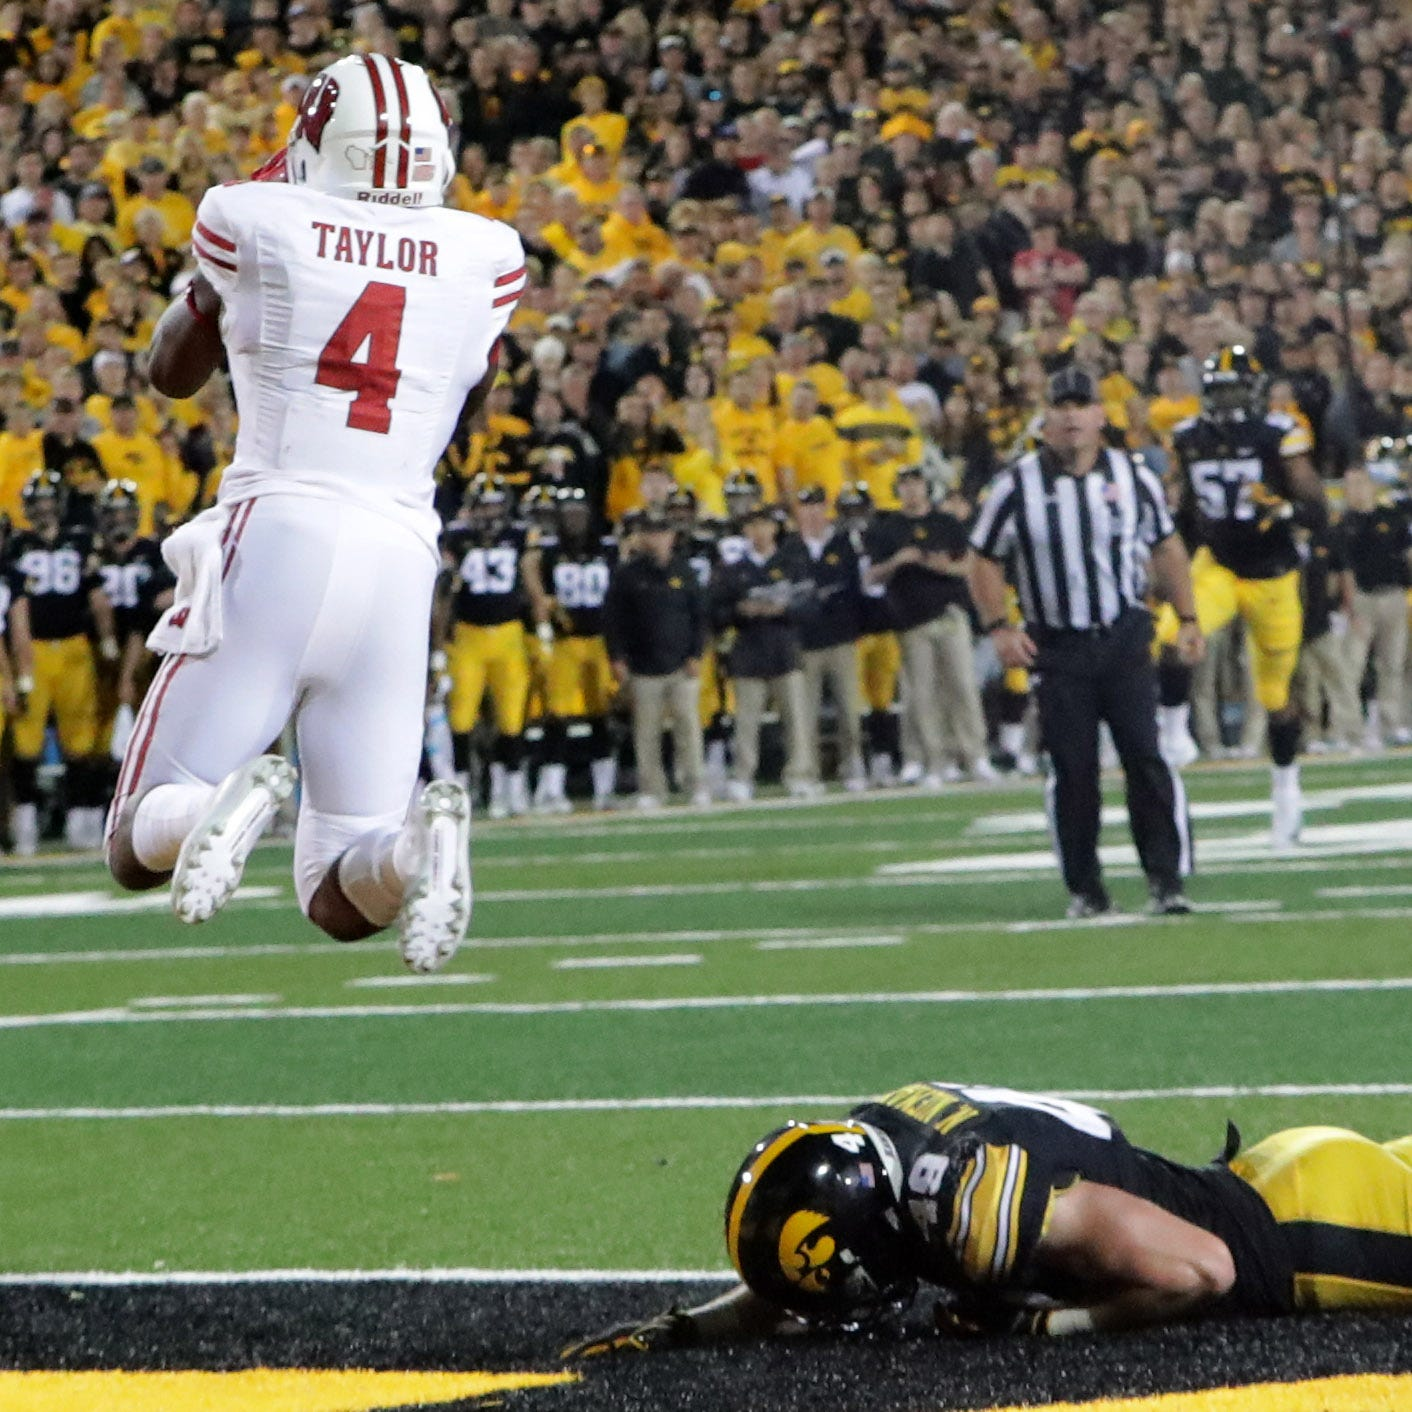 UW 28, Iowa 17: Two late scores boost the Badgers to a bounce-back win in their Big Ten opener